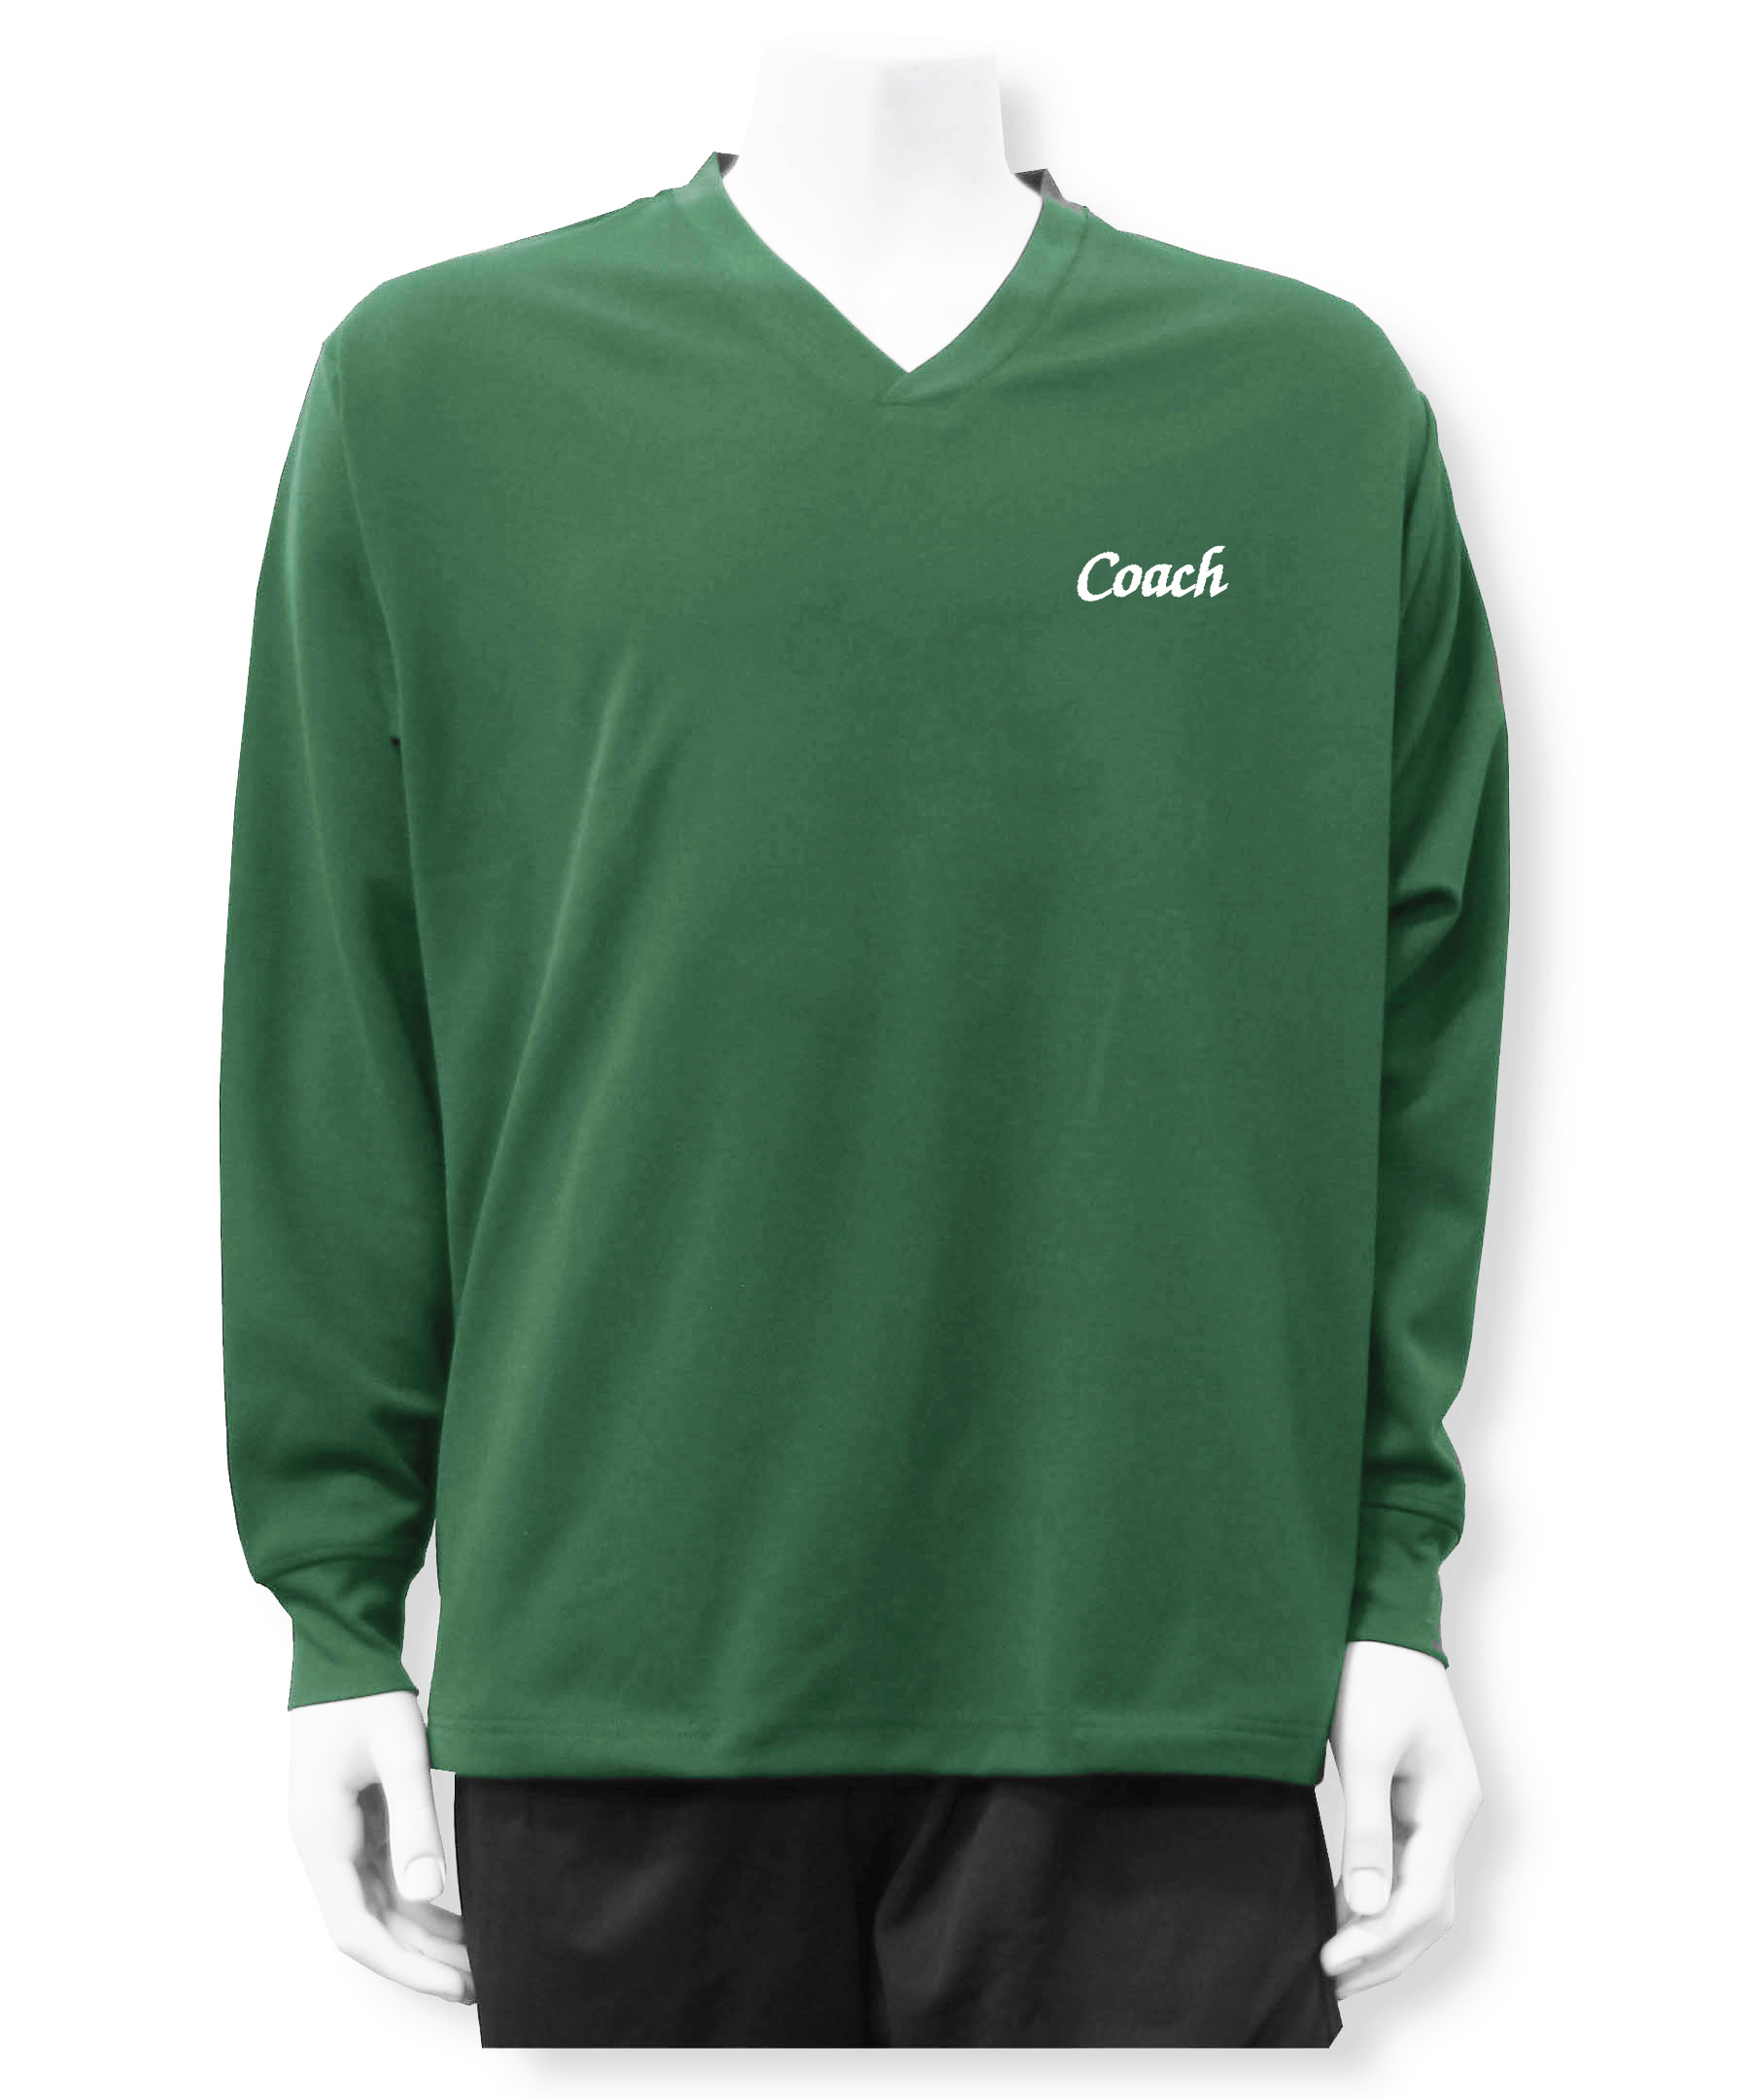 Coach pullover in forest by Code Four Athletics